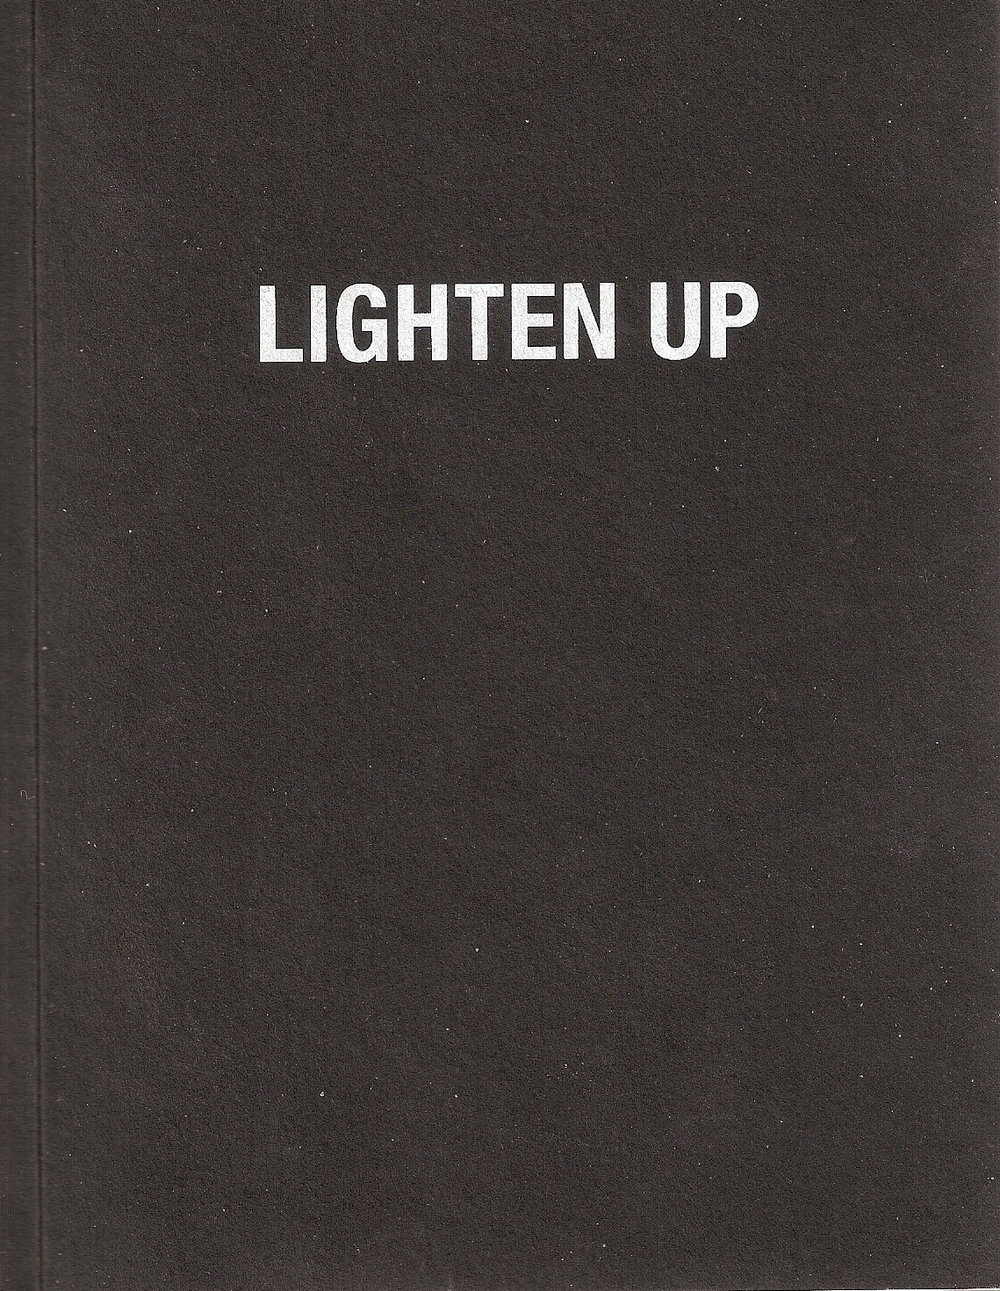 BOOK:  Lighten Up